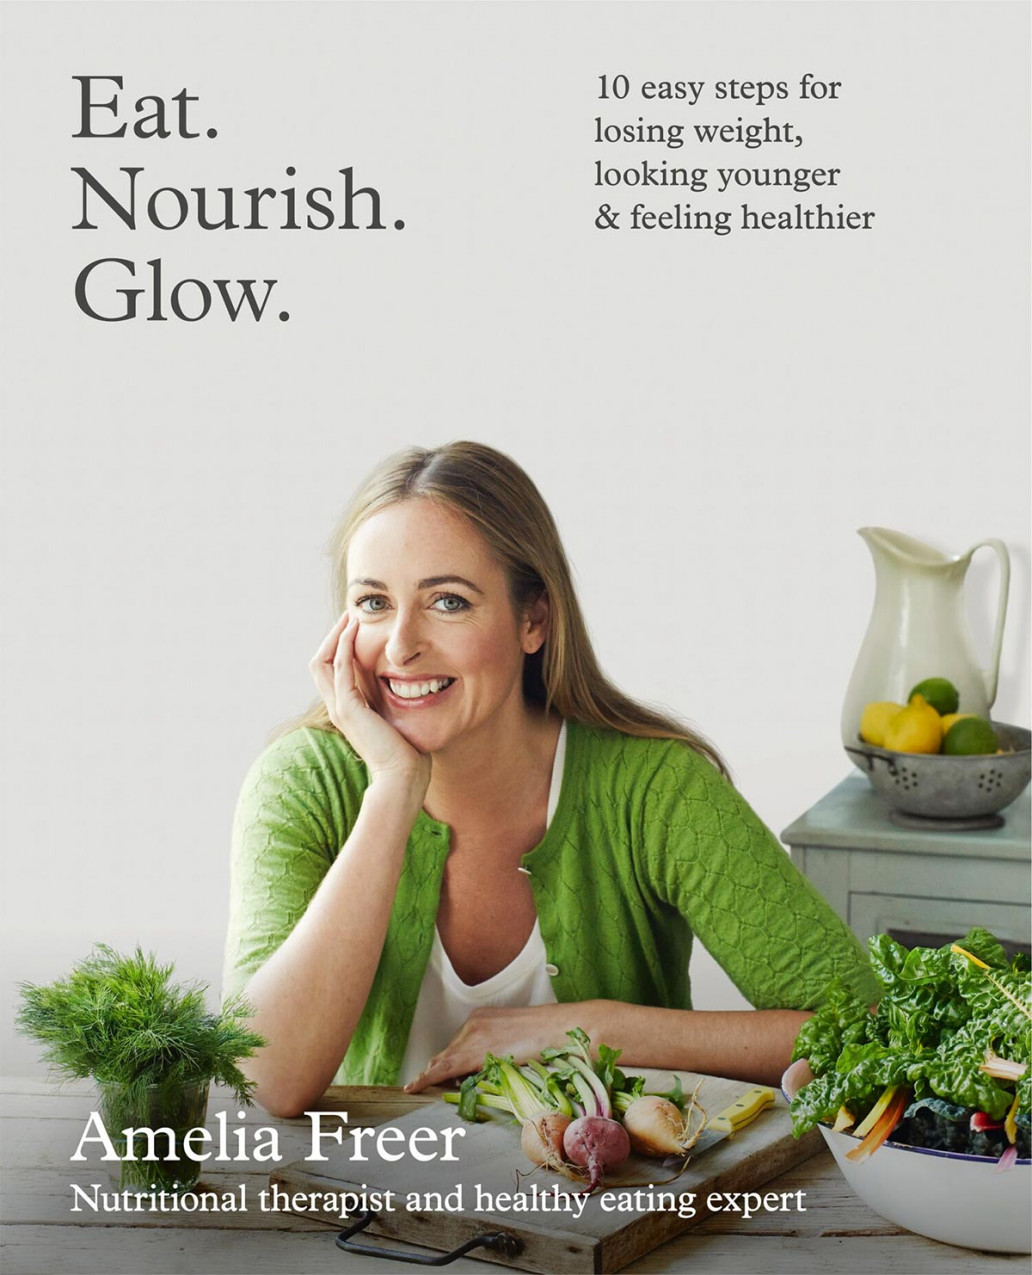 Eat.Nourish.Glow. by Amelia Freer